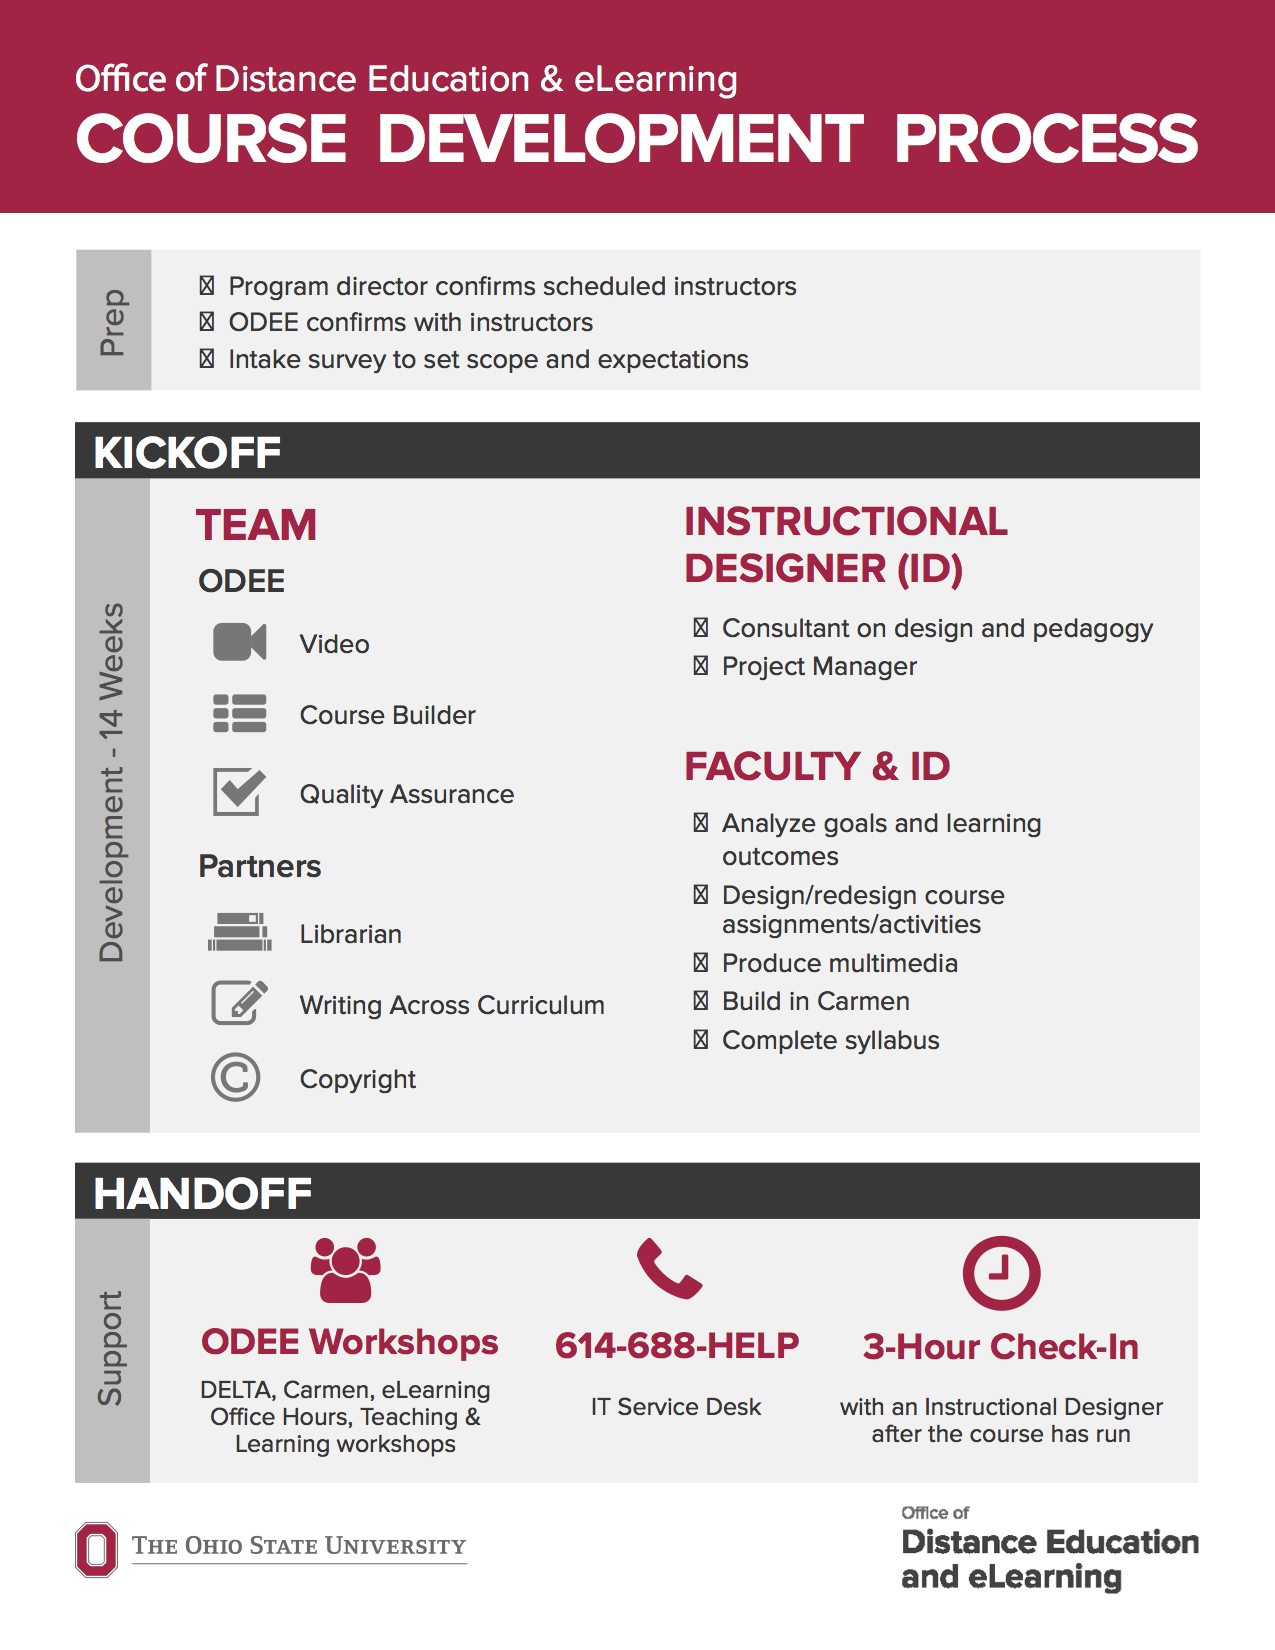 Illustrating The Course Creation And Design Process Office Of Distance Education And Elearning